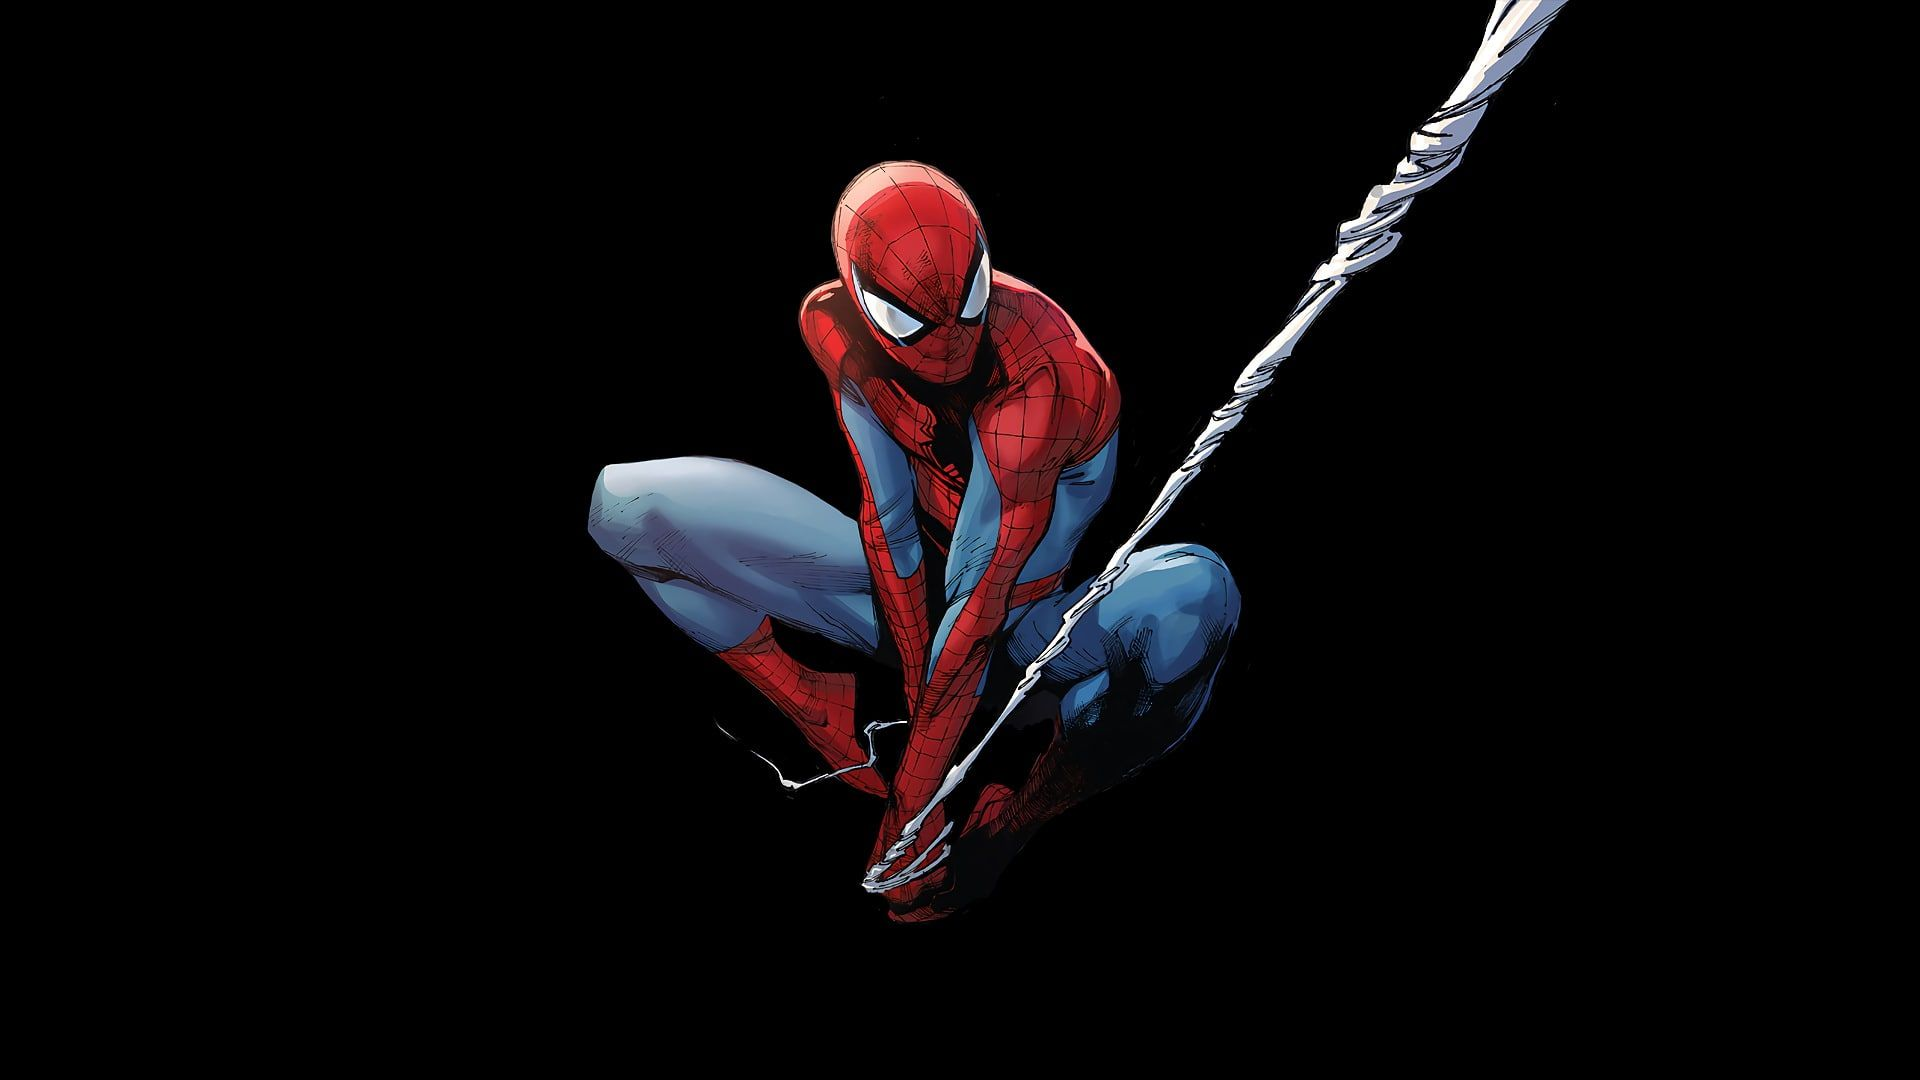 Marvel Comics Spider Man Black Background Superhero 1080p Wallpaper Hdwallpaper Desktop In 2020 Spiderman Comic Art Spiderman Black Spiderman